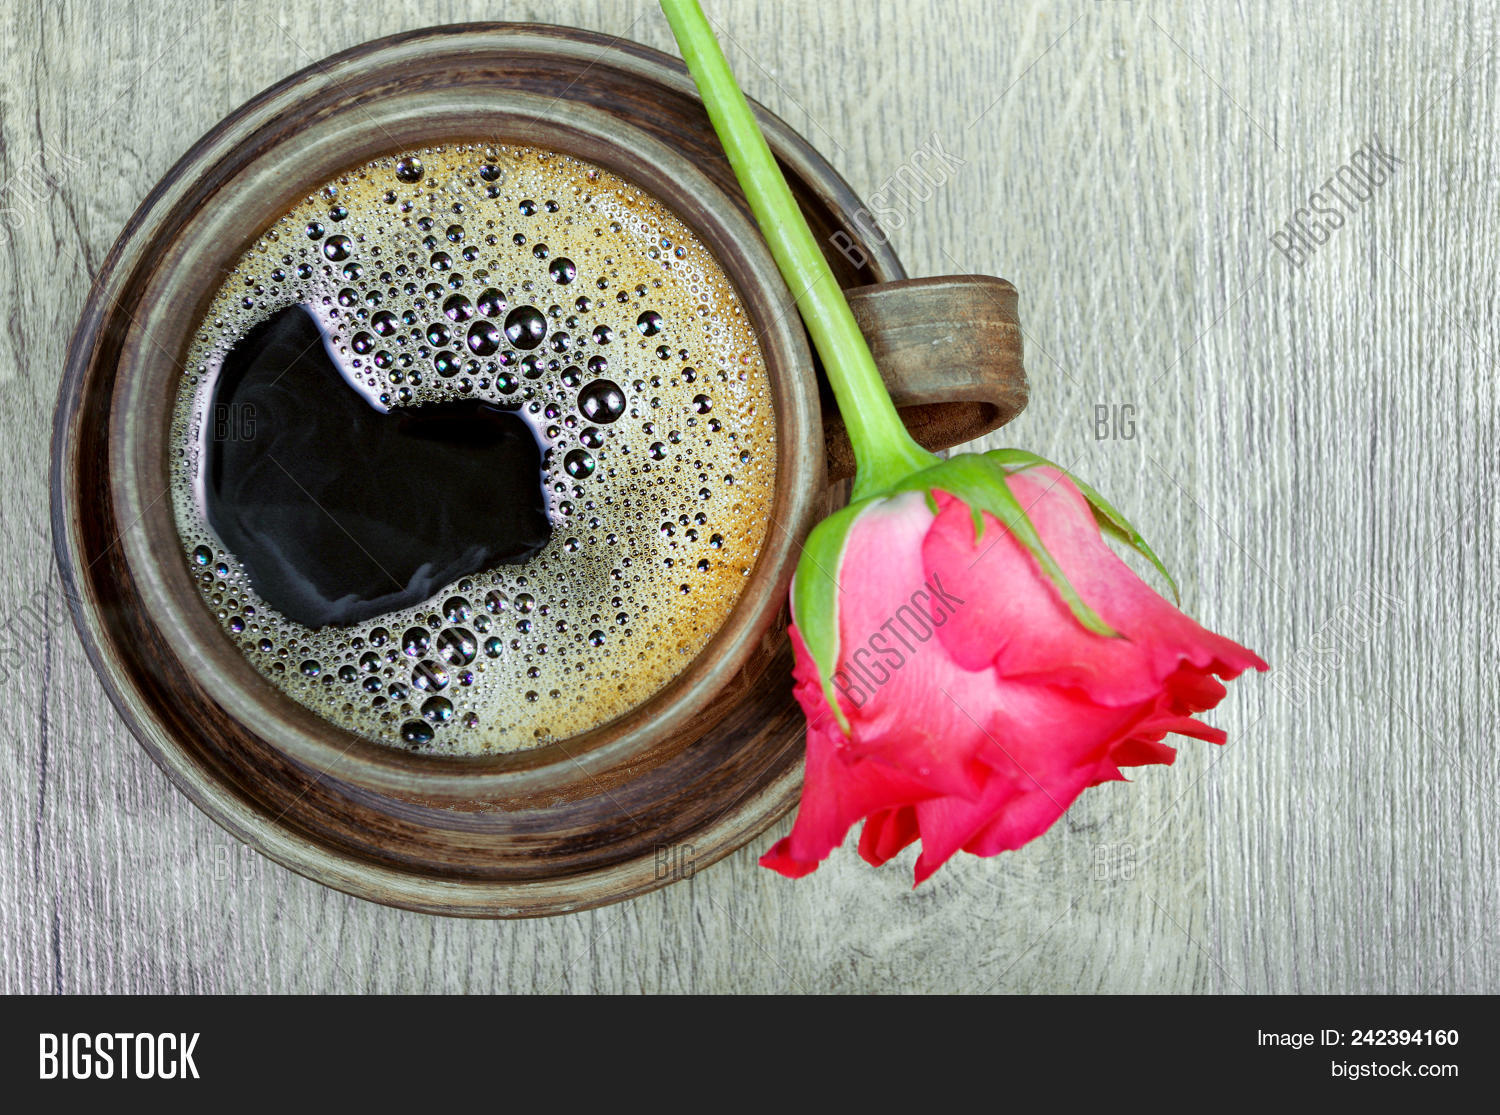 Good Morning Cup Image Photo Free Trial Bigstock